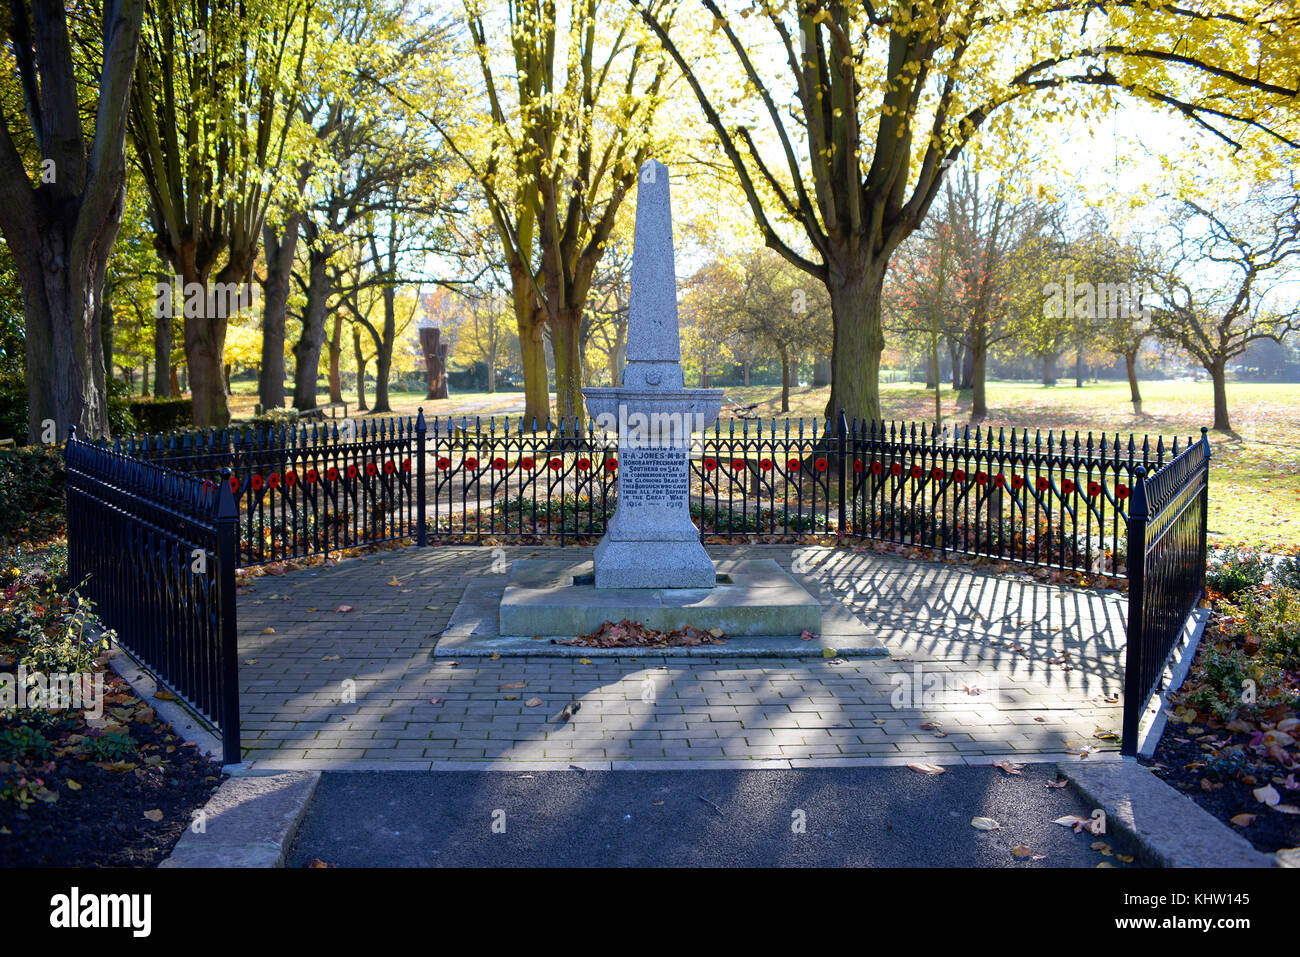 Great War memorial in Priory Park Prittlewell Southend on Sea, Essex. Presented by RA Jones. Space for copy - Stock Image